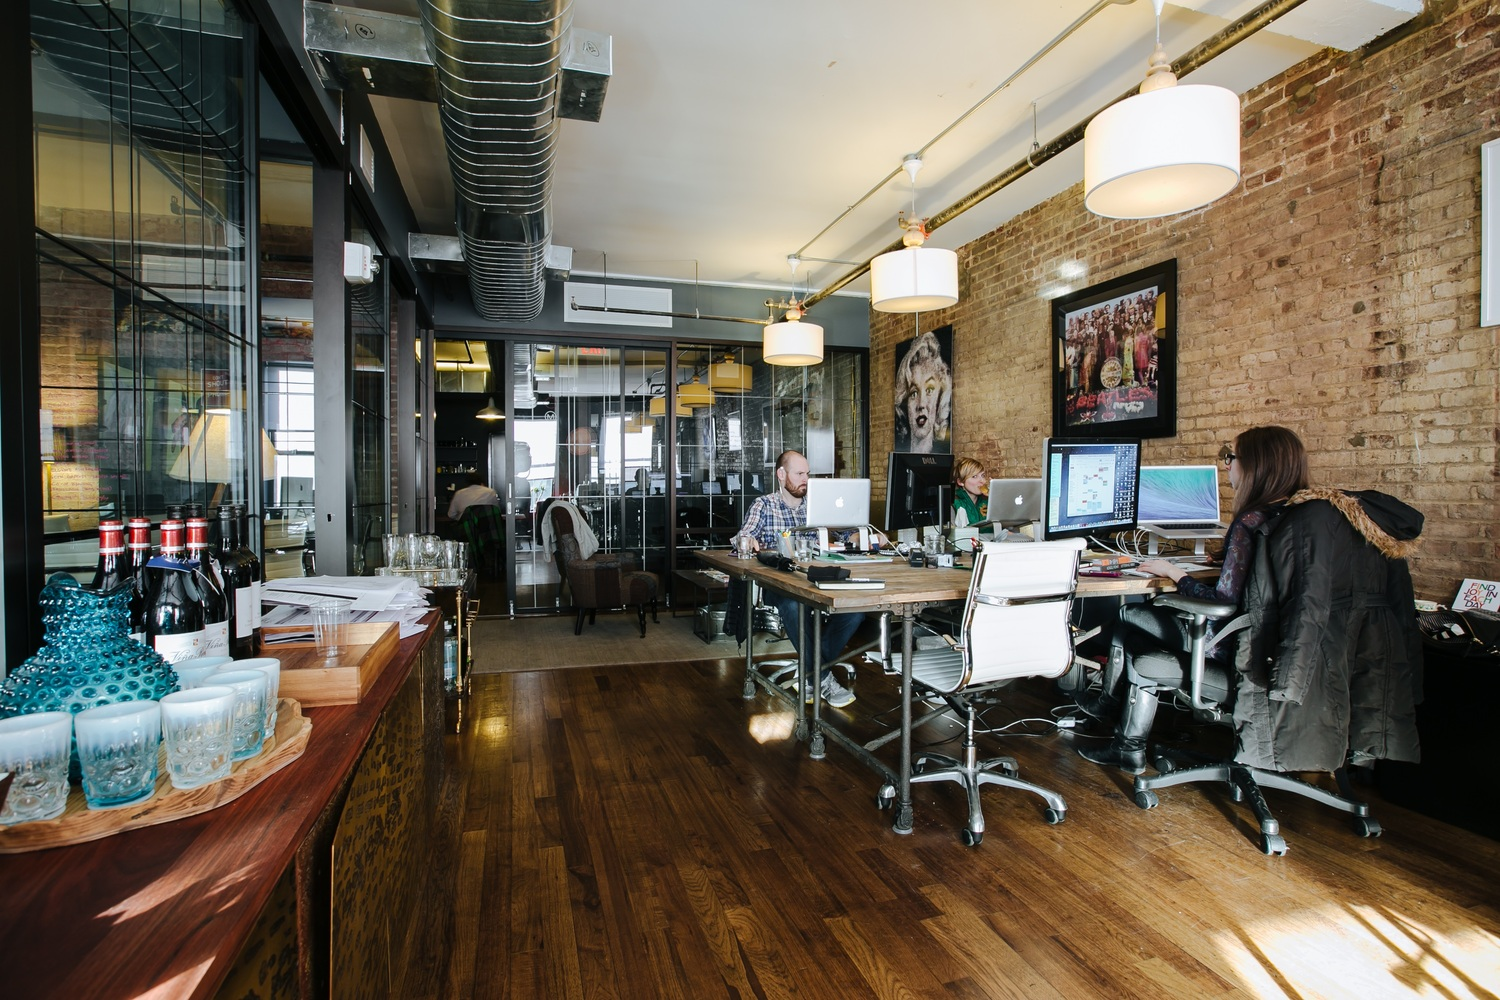 gallery of as wework acquires case the future of office design may